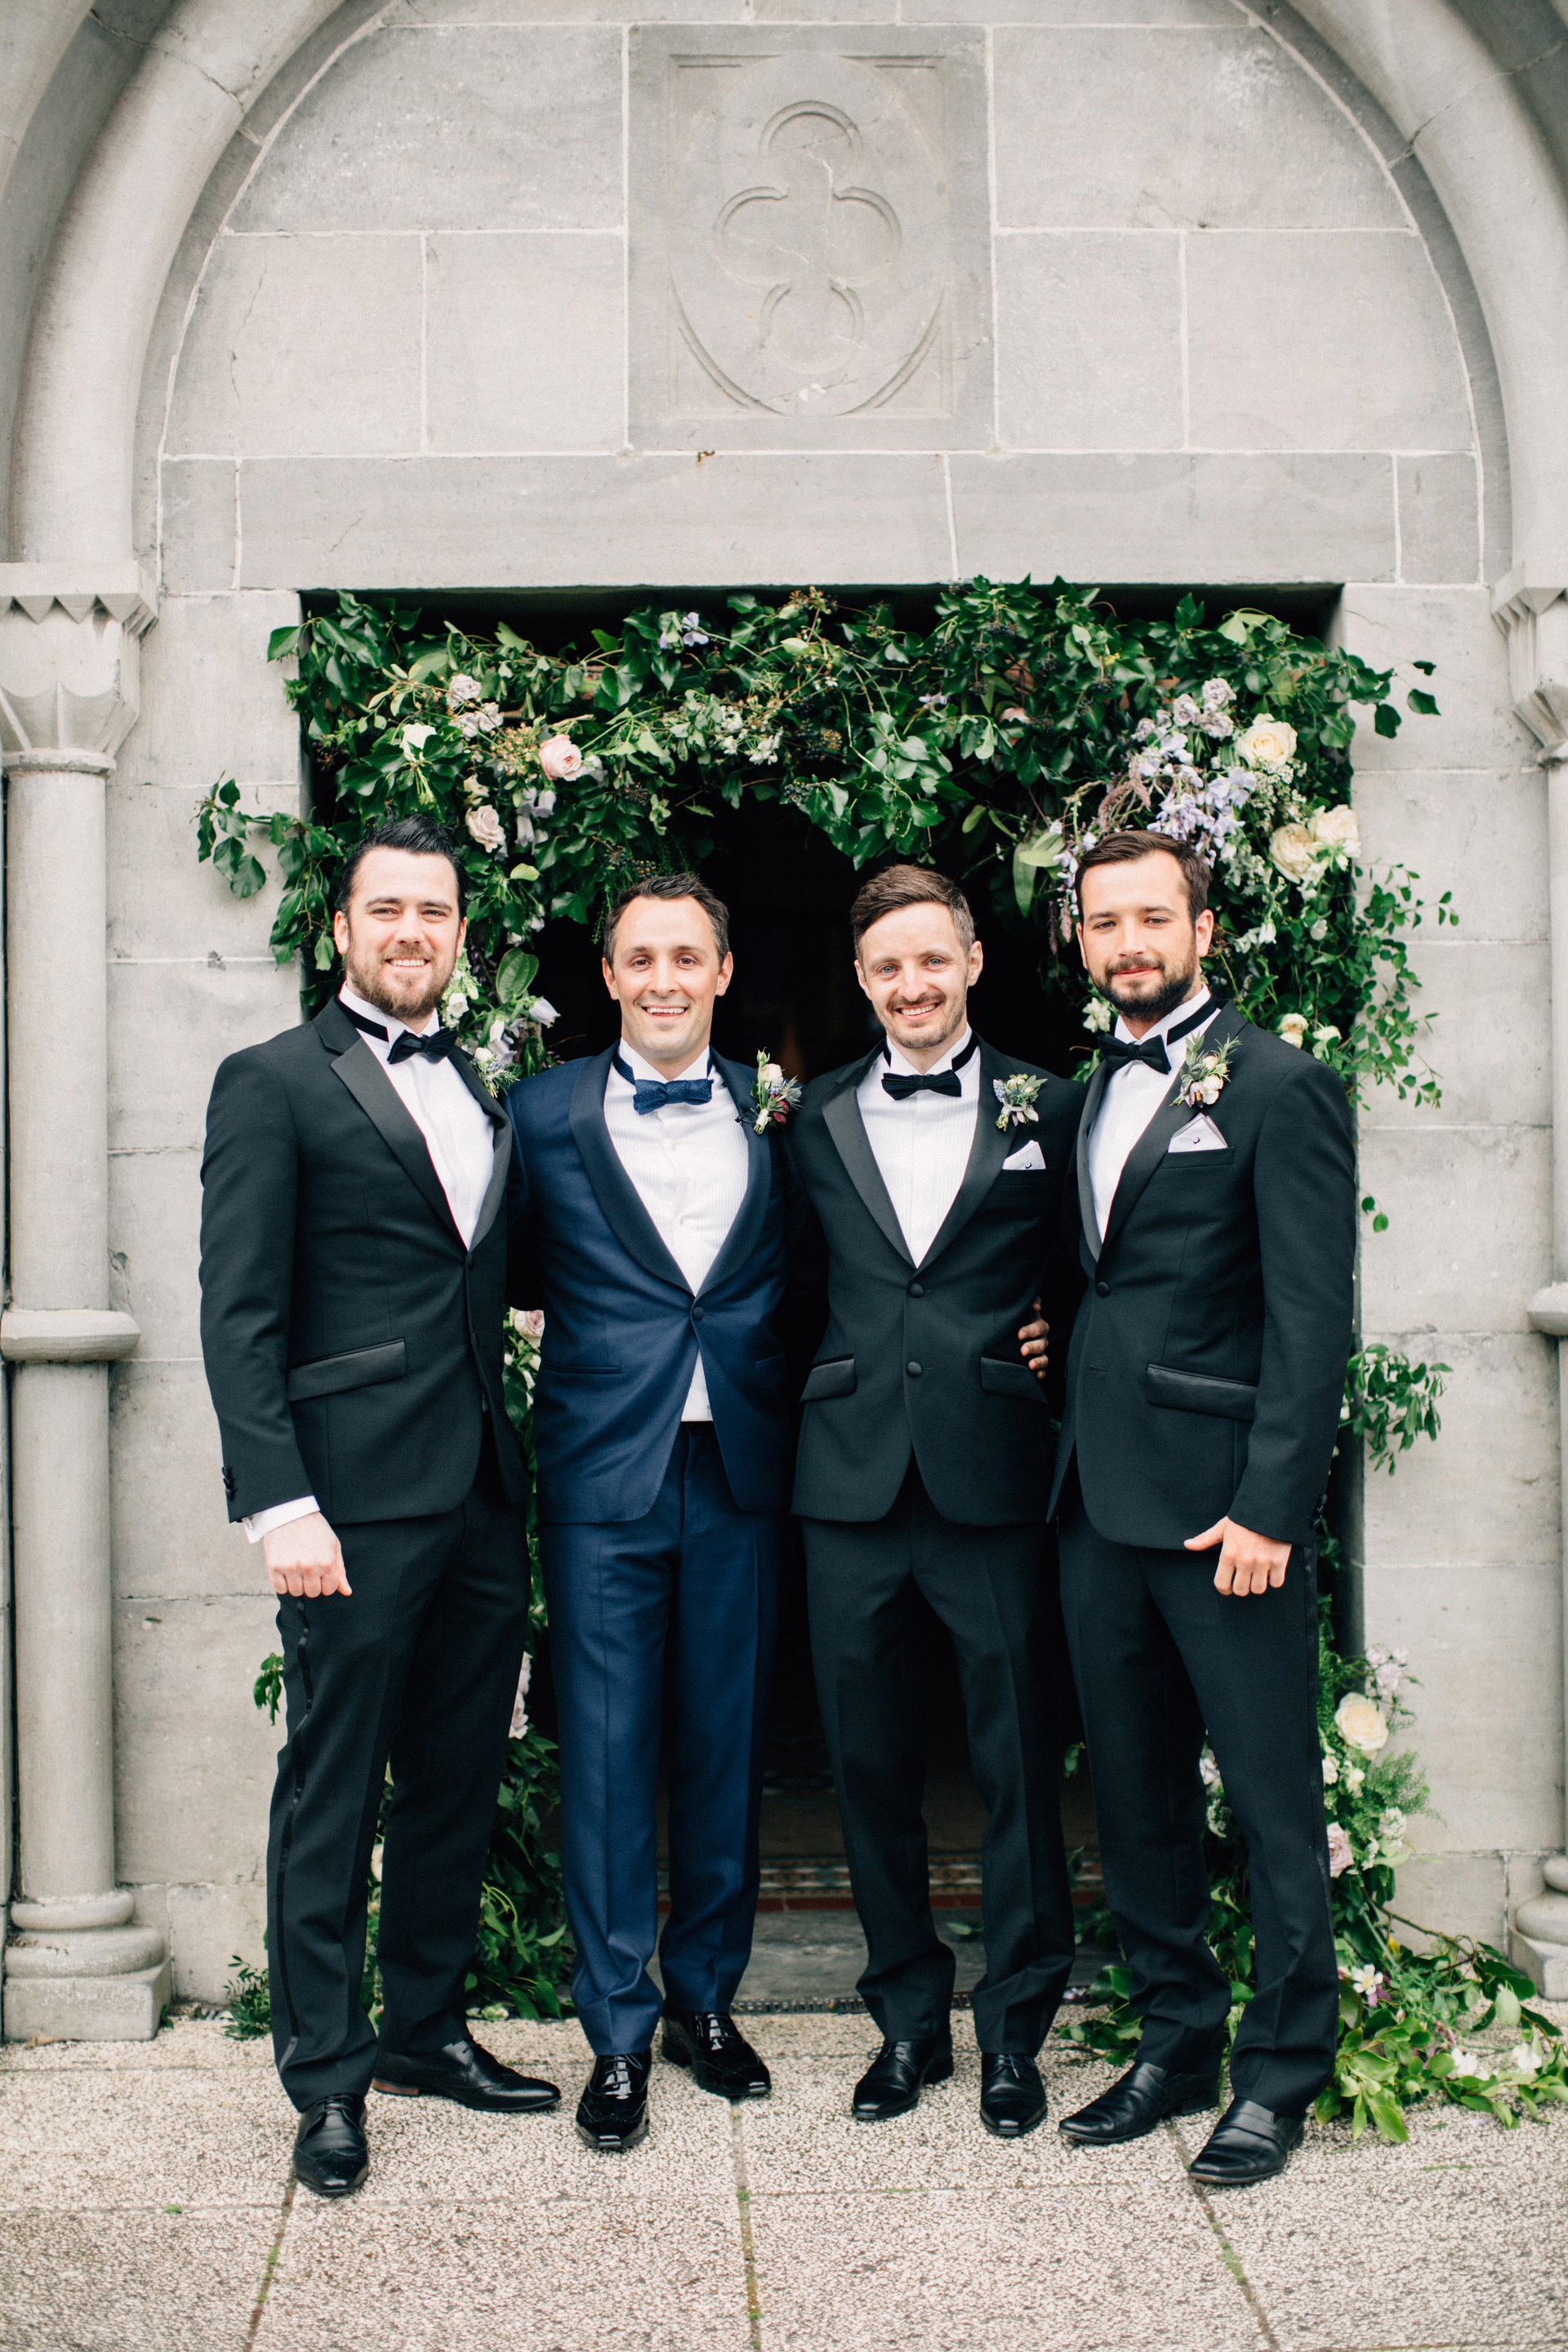 What's the Best Man Responsible for at the Rehearsal Dinner?